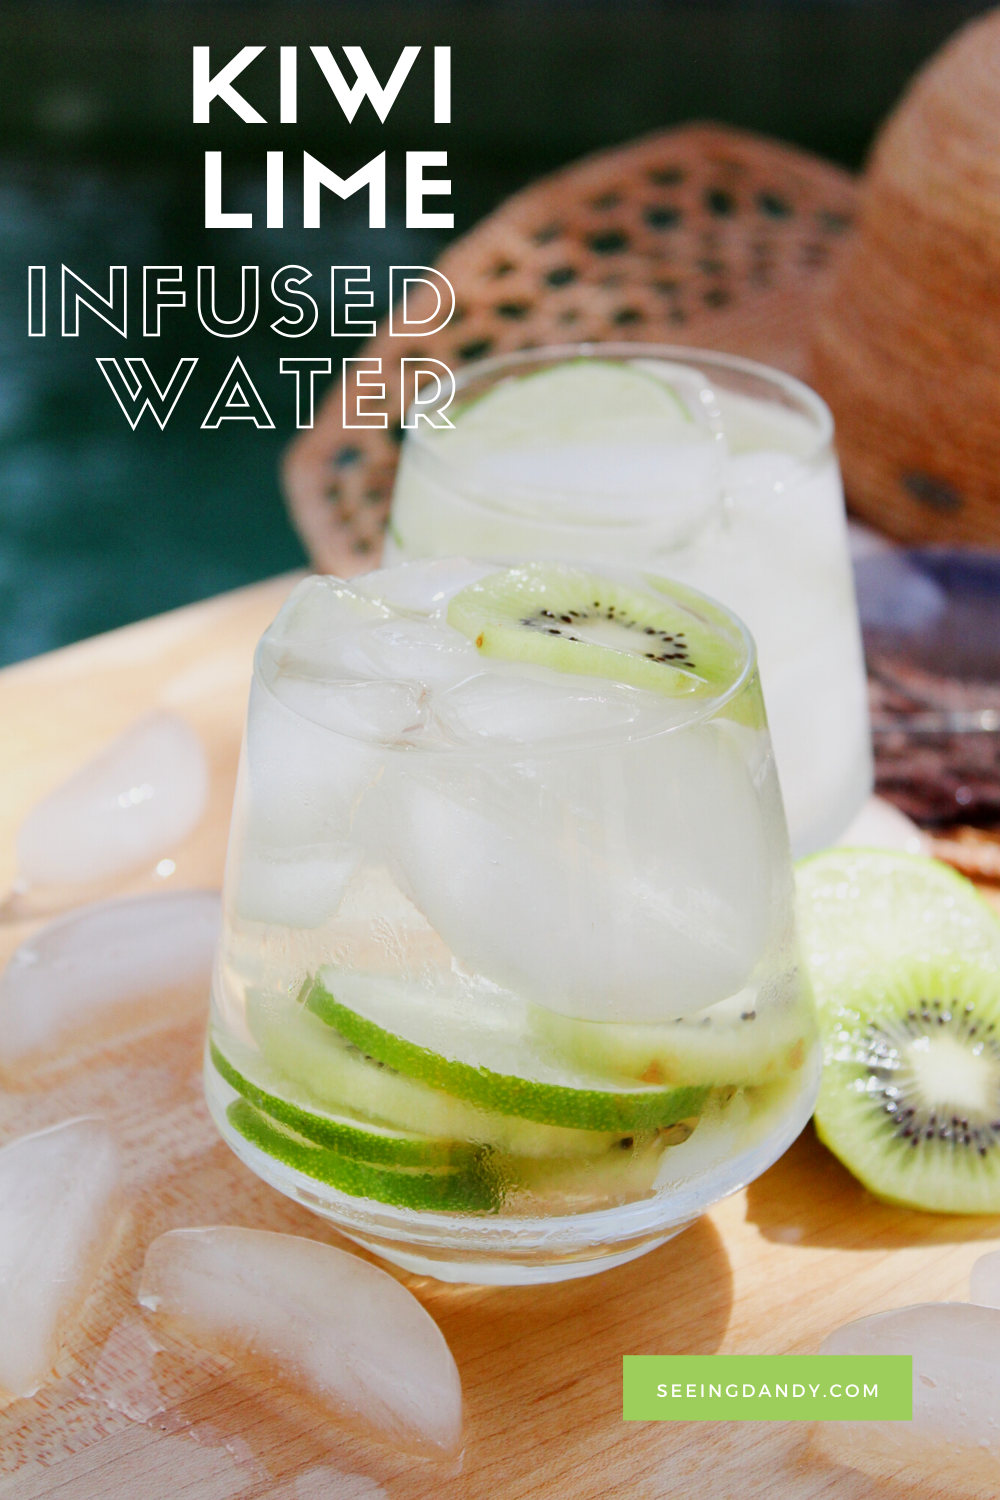 kiwi lime infused water, infused water recipes, summer recipes, poolside, patio drink, summer sun hat, sunglasses, melting ice